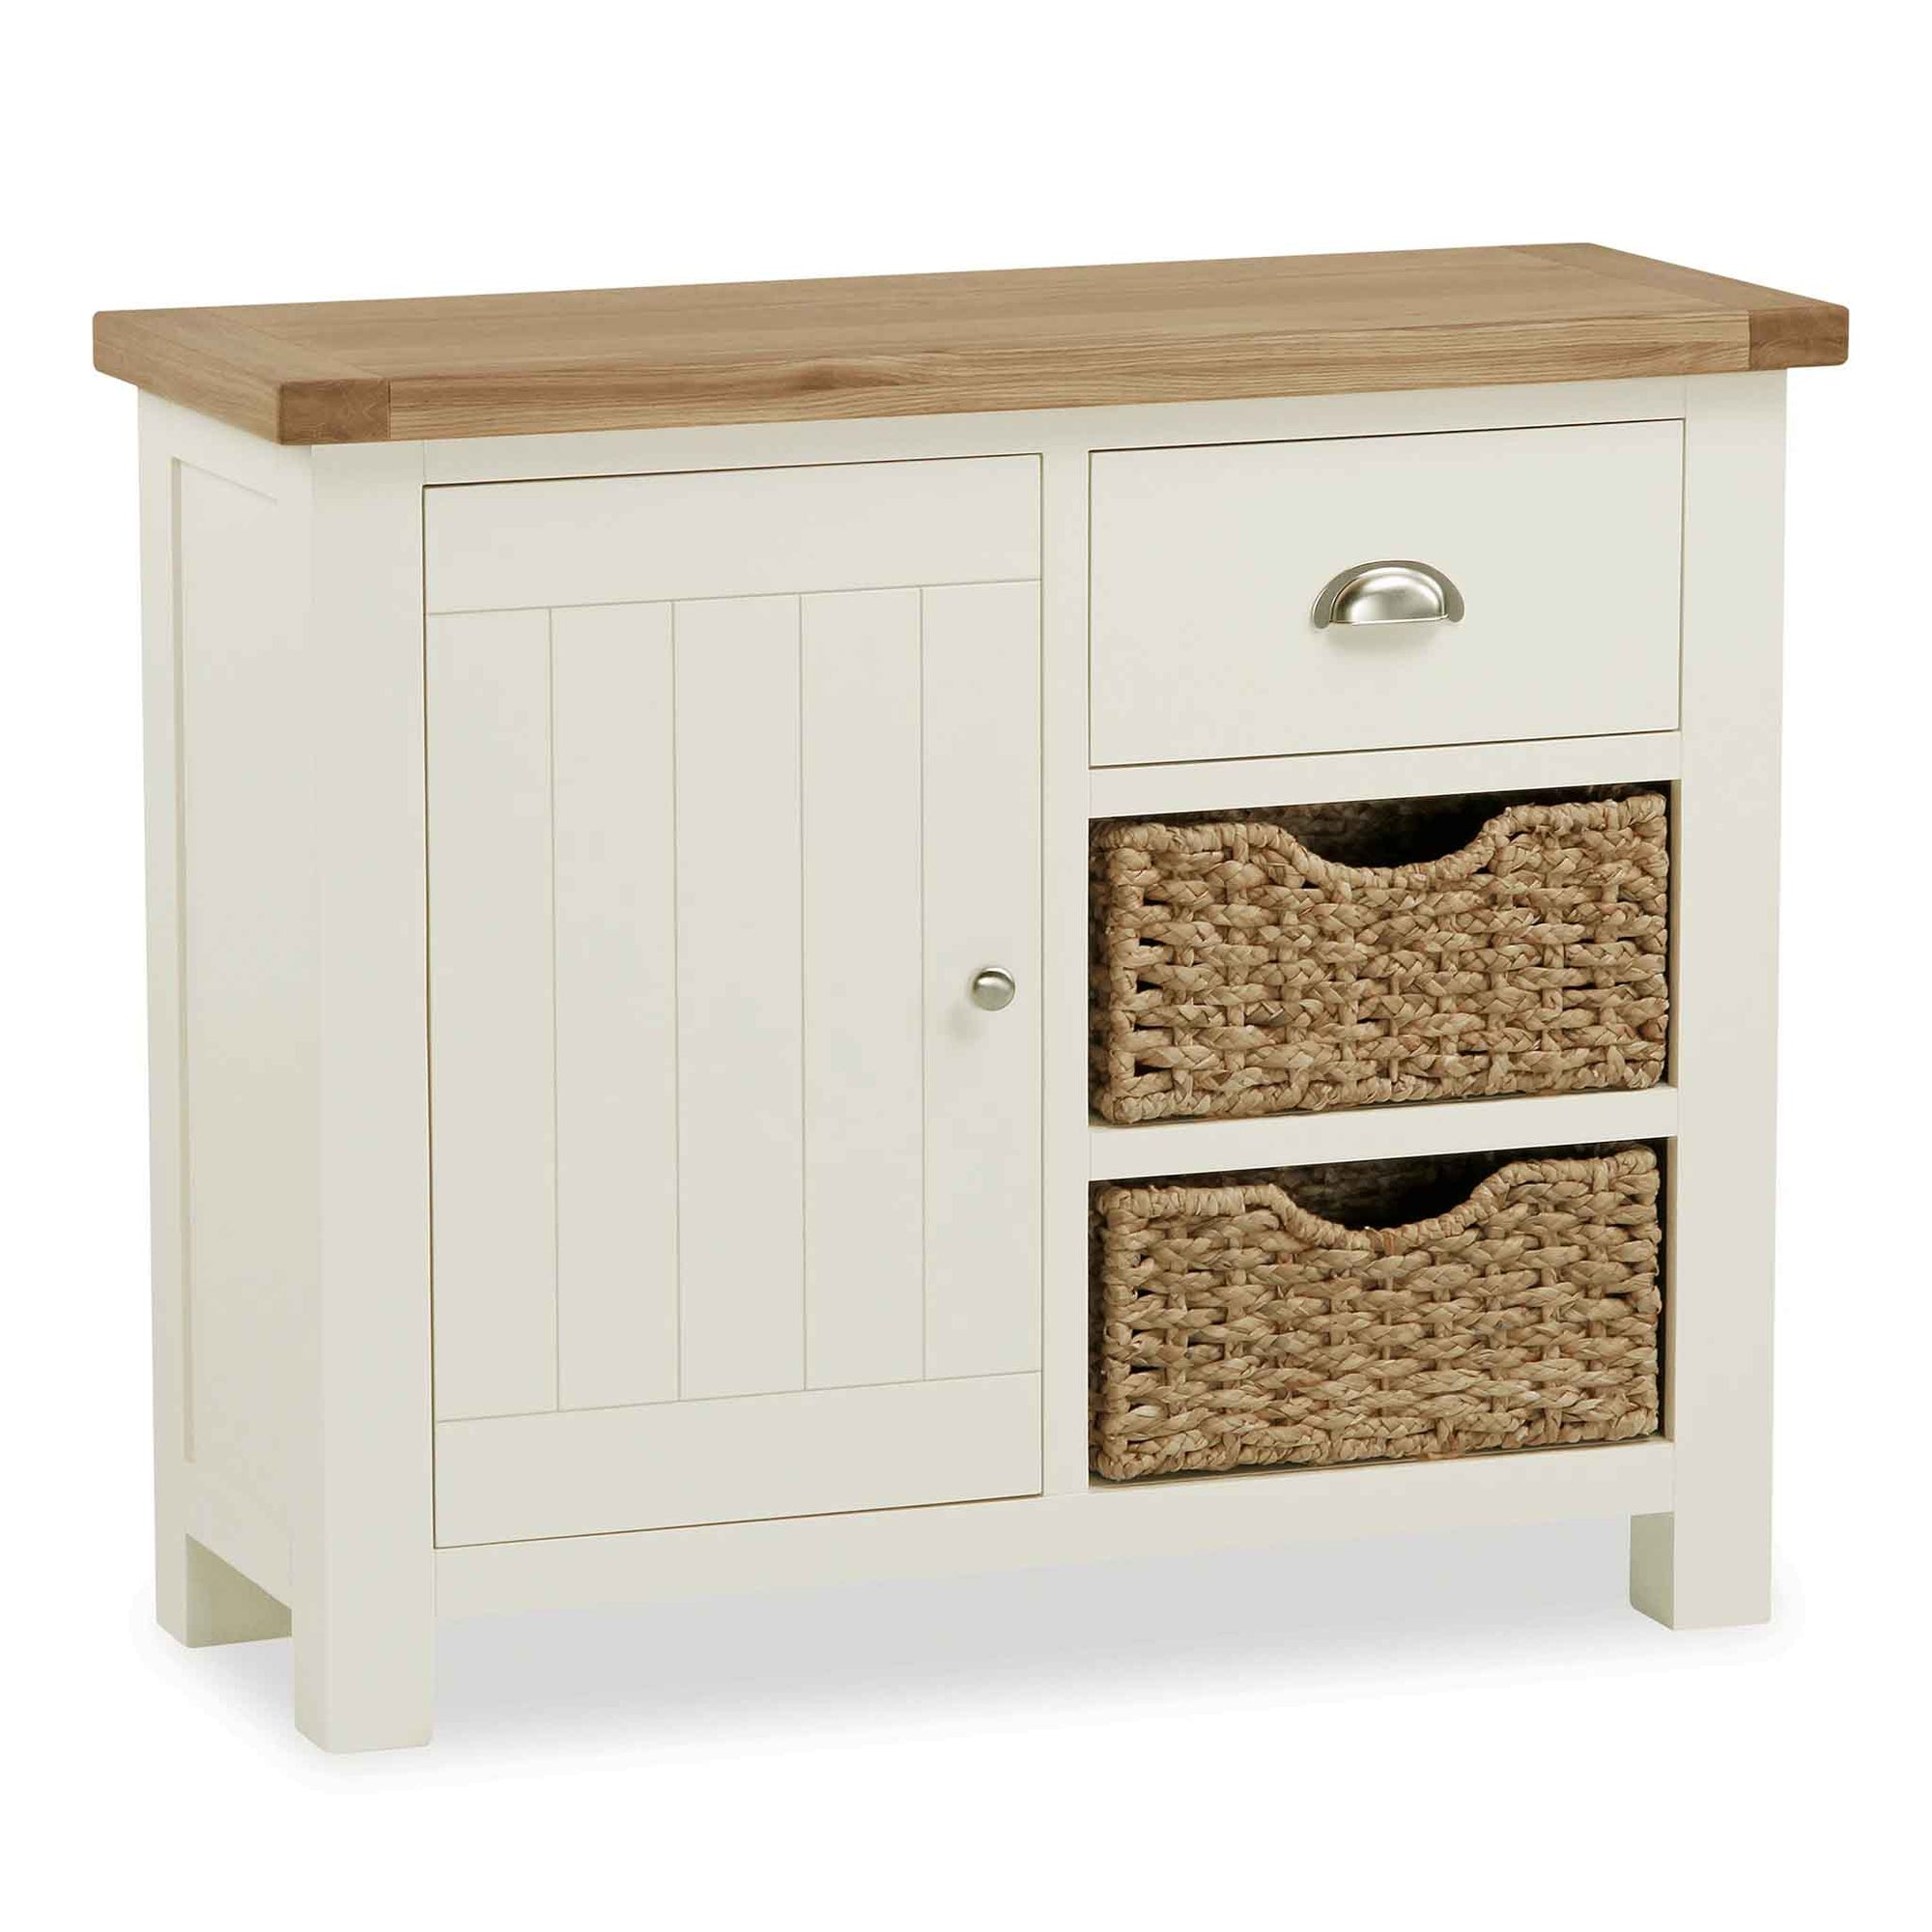 The Daymer Cream Painted Small Oak Sideboard Cabinet with Baskets from Roseland Furniture